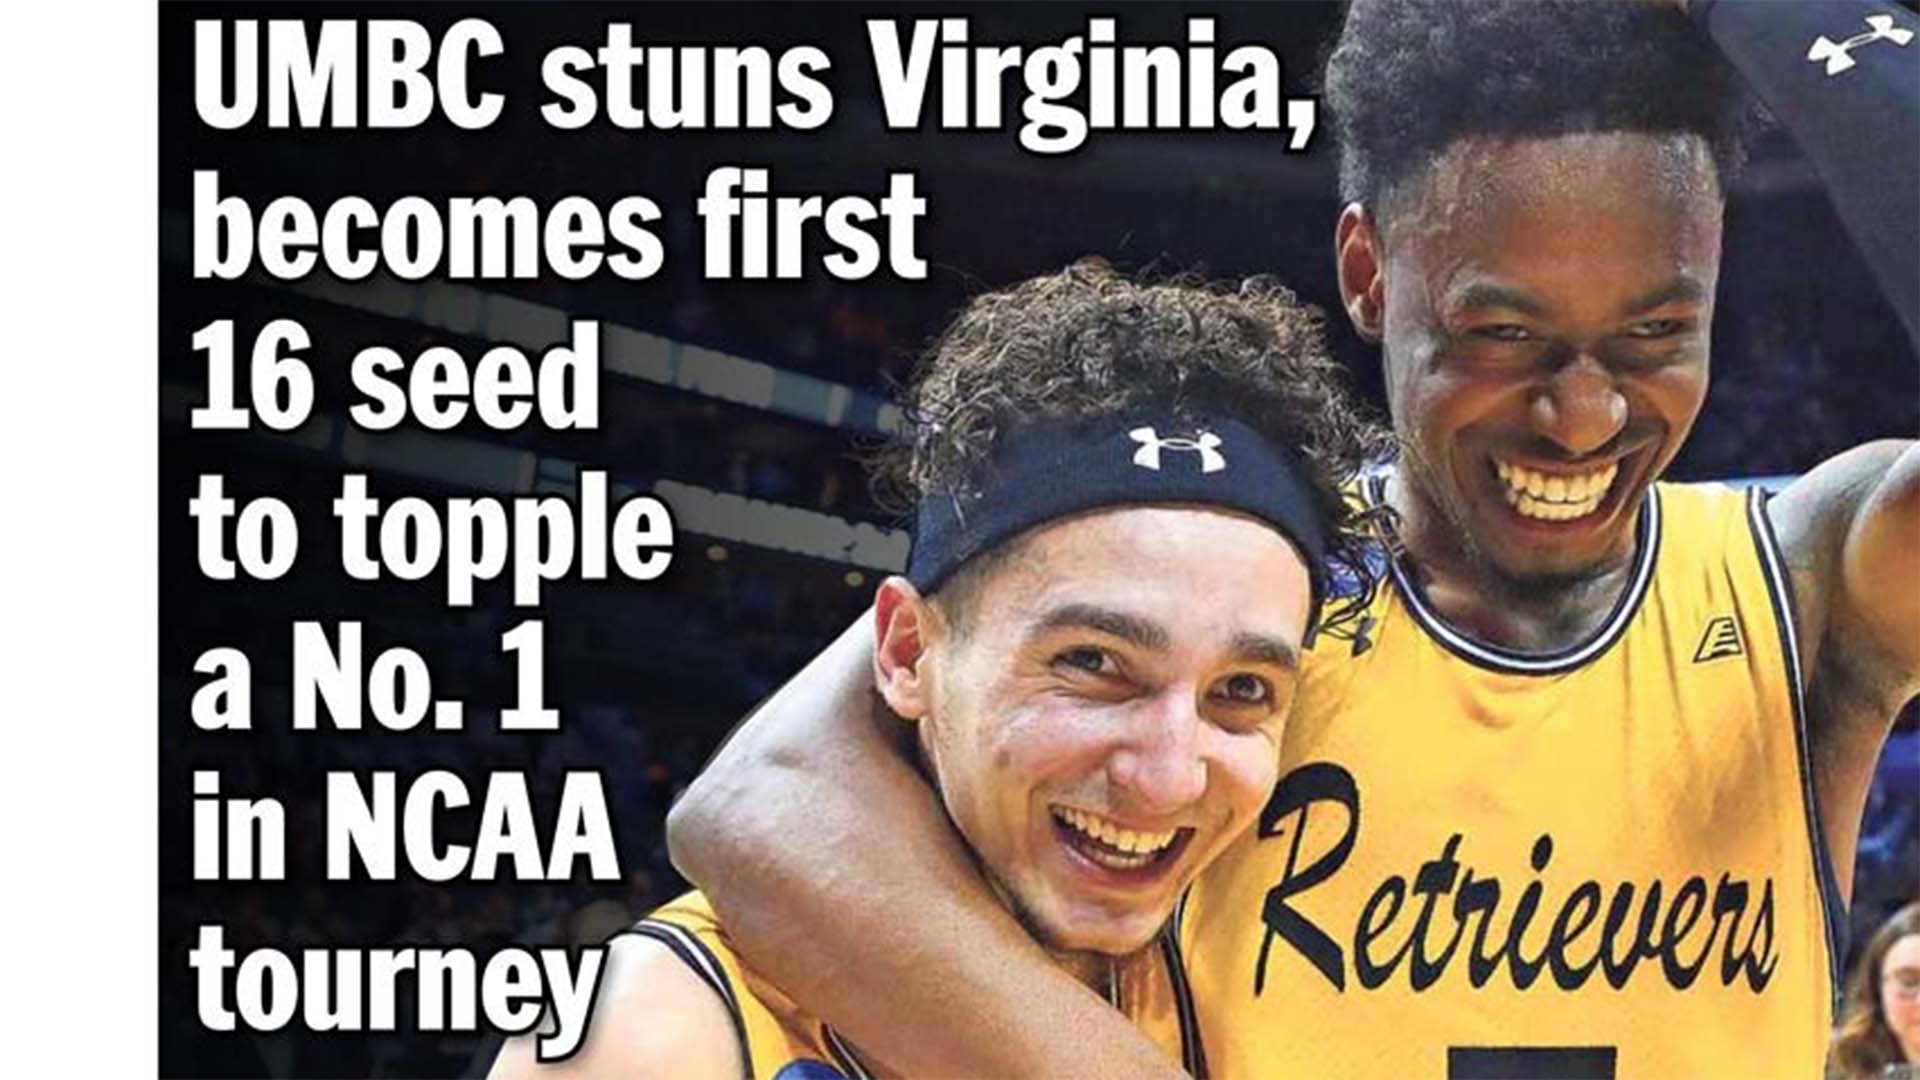 UMBC Player Compares Beating Virginia to Winning Fortnite ... Really